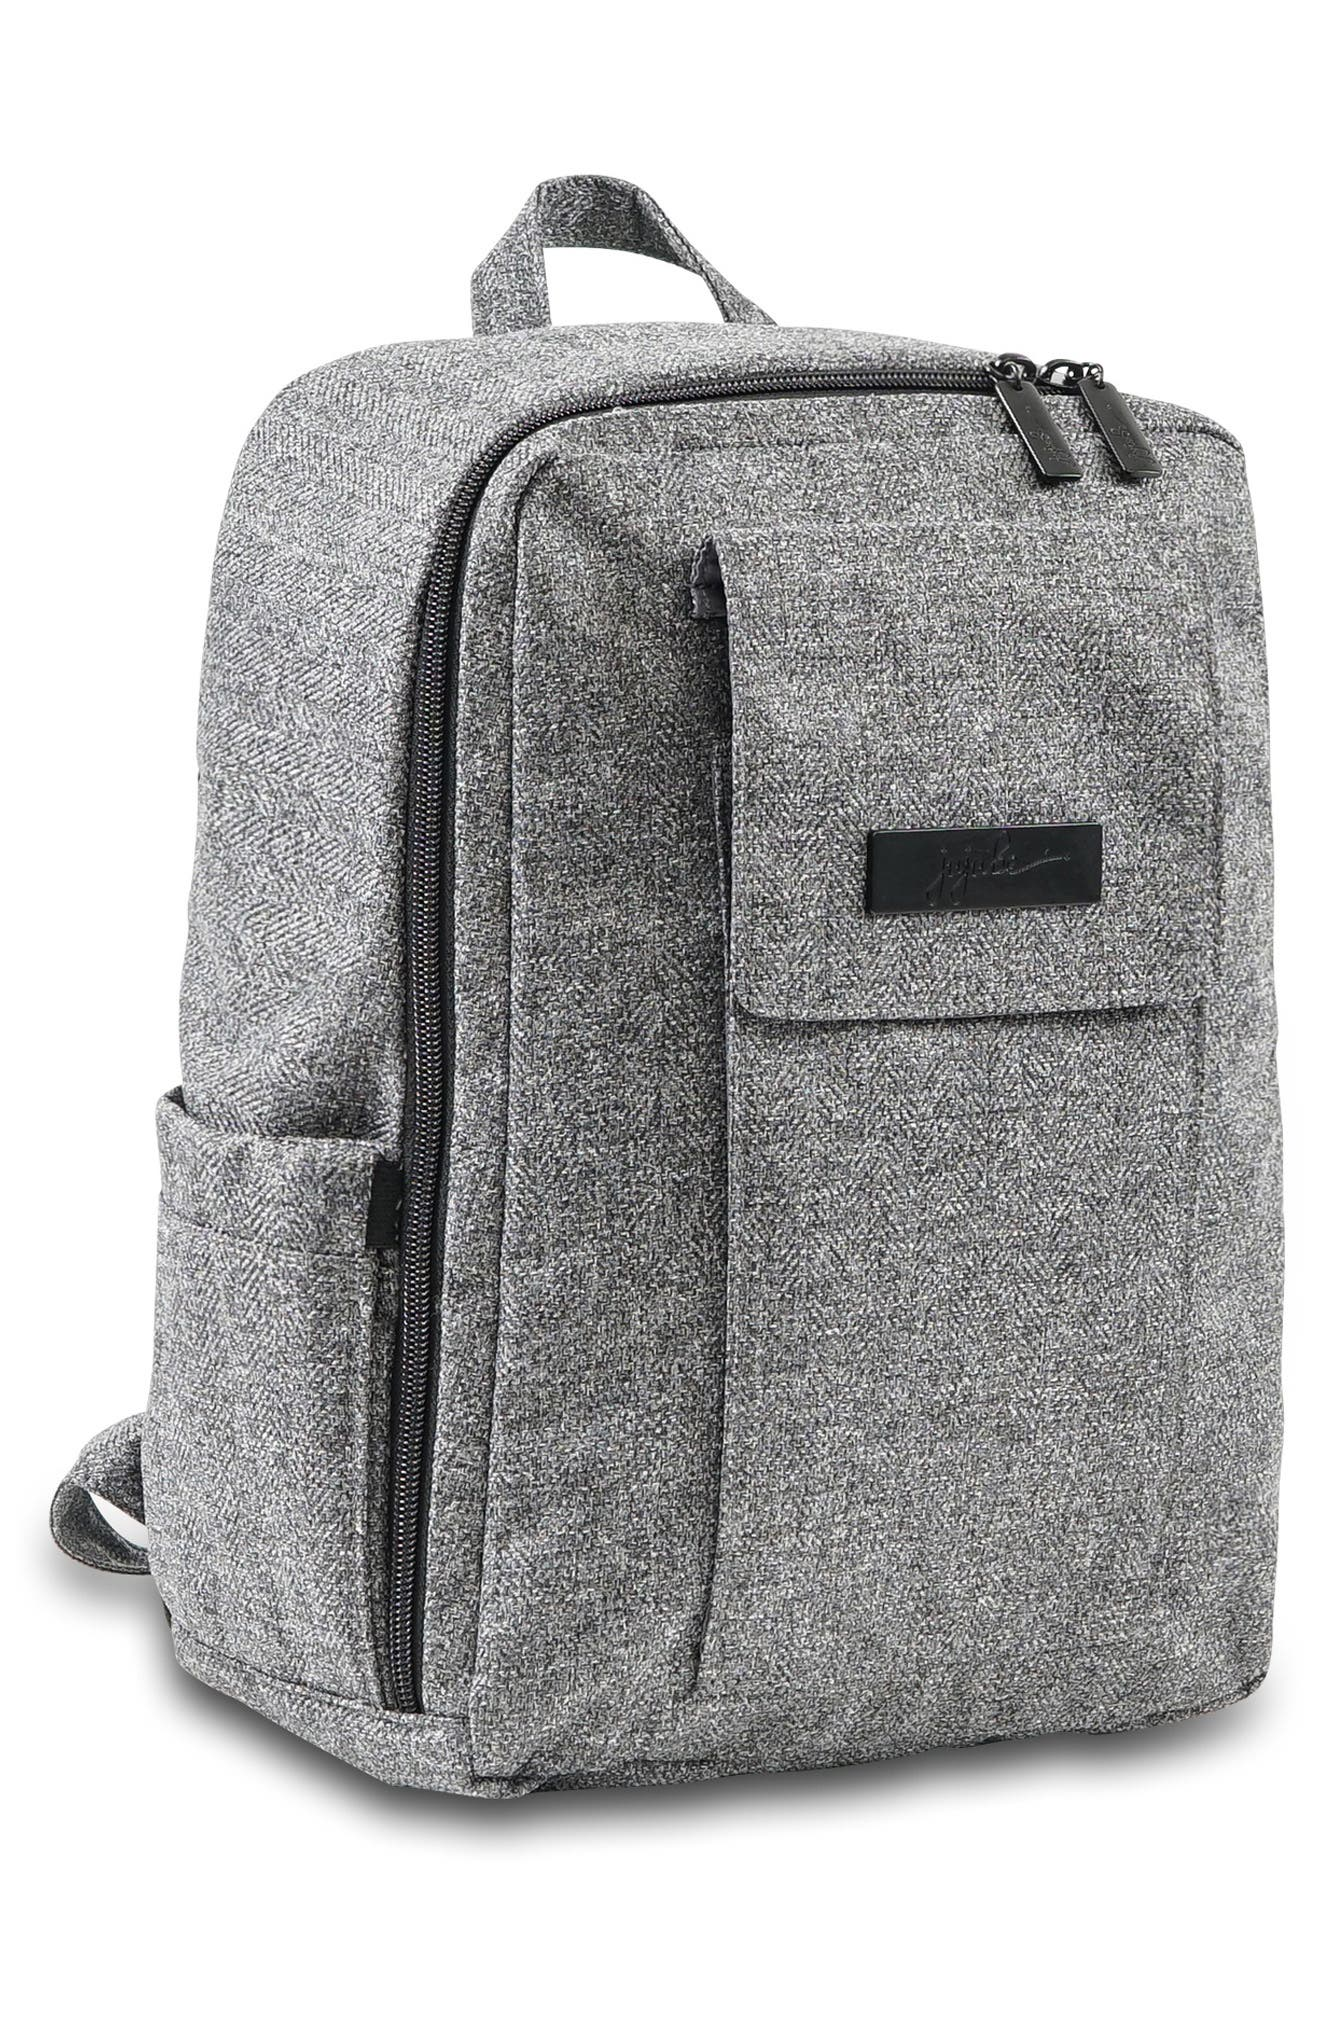 'Mini Be - Onyx Collection' Backpack,                             Alternate thumbnail 5, color,                             GRAY MATTER